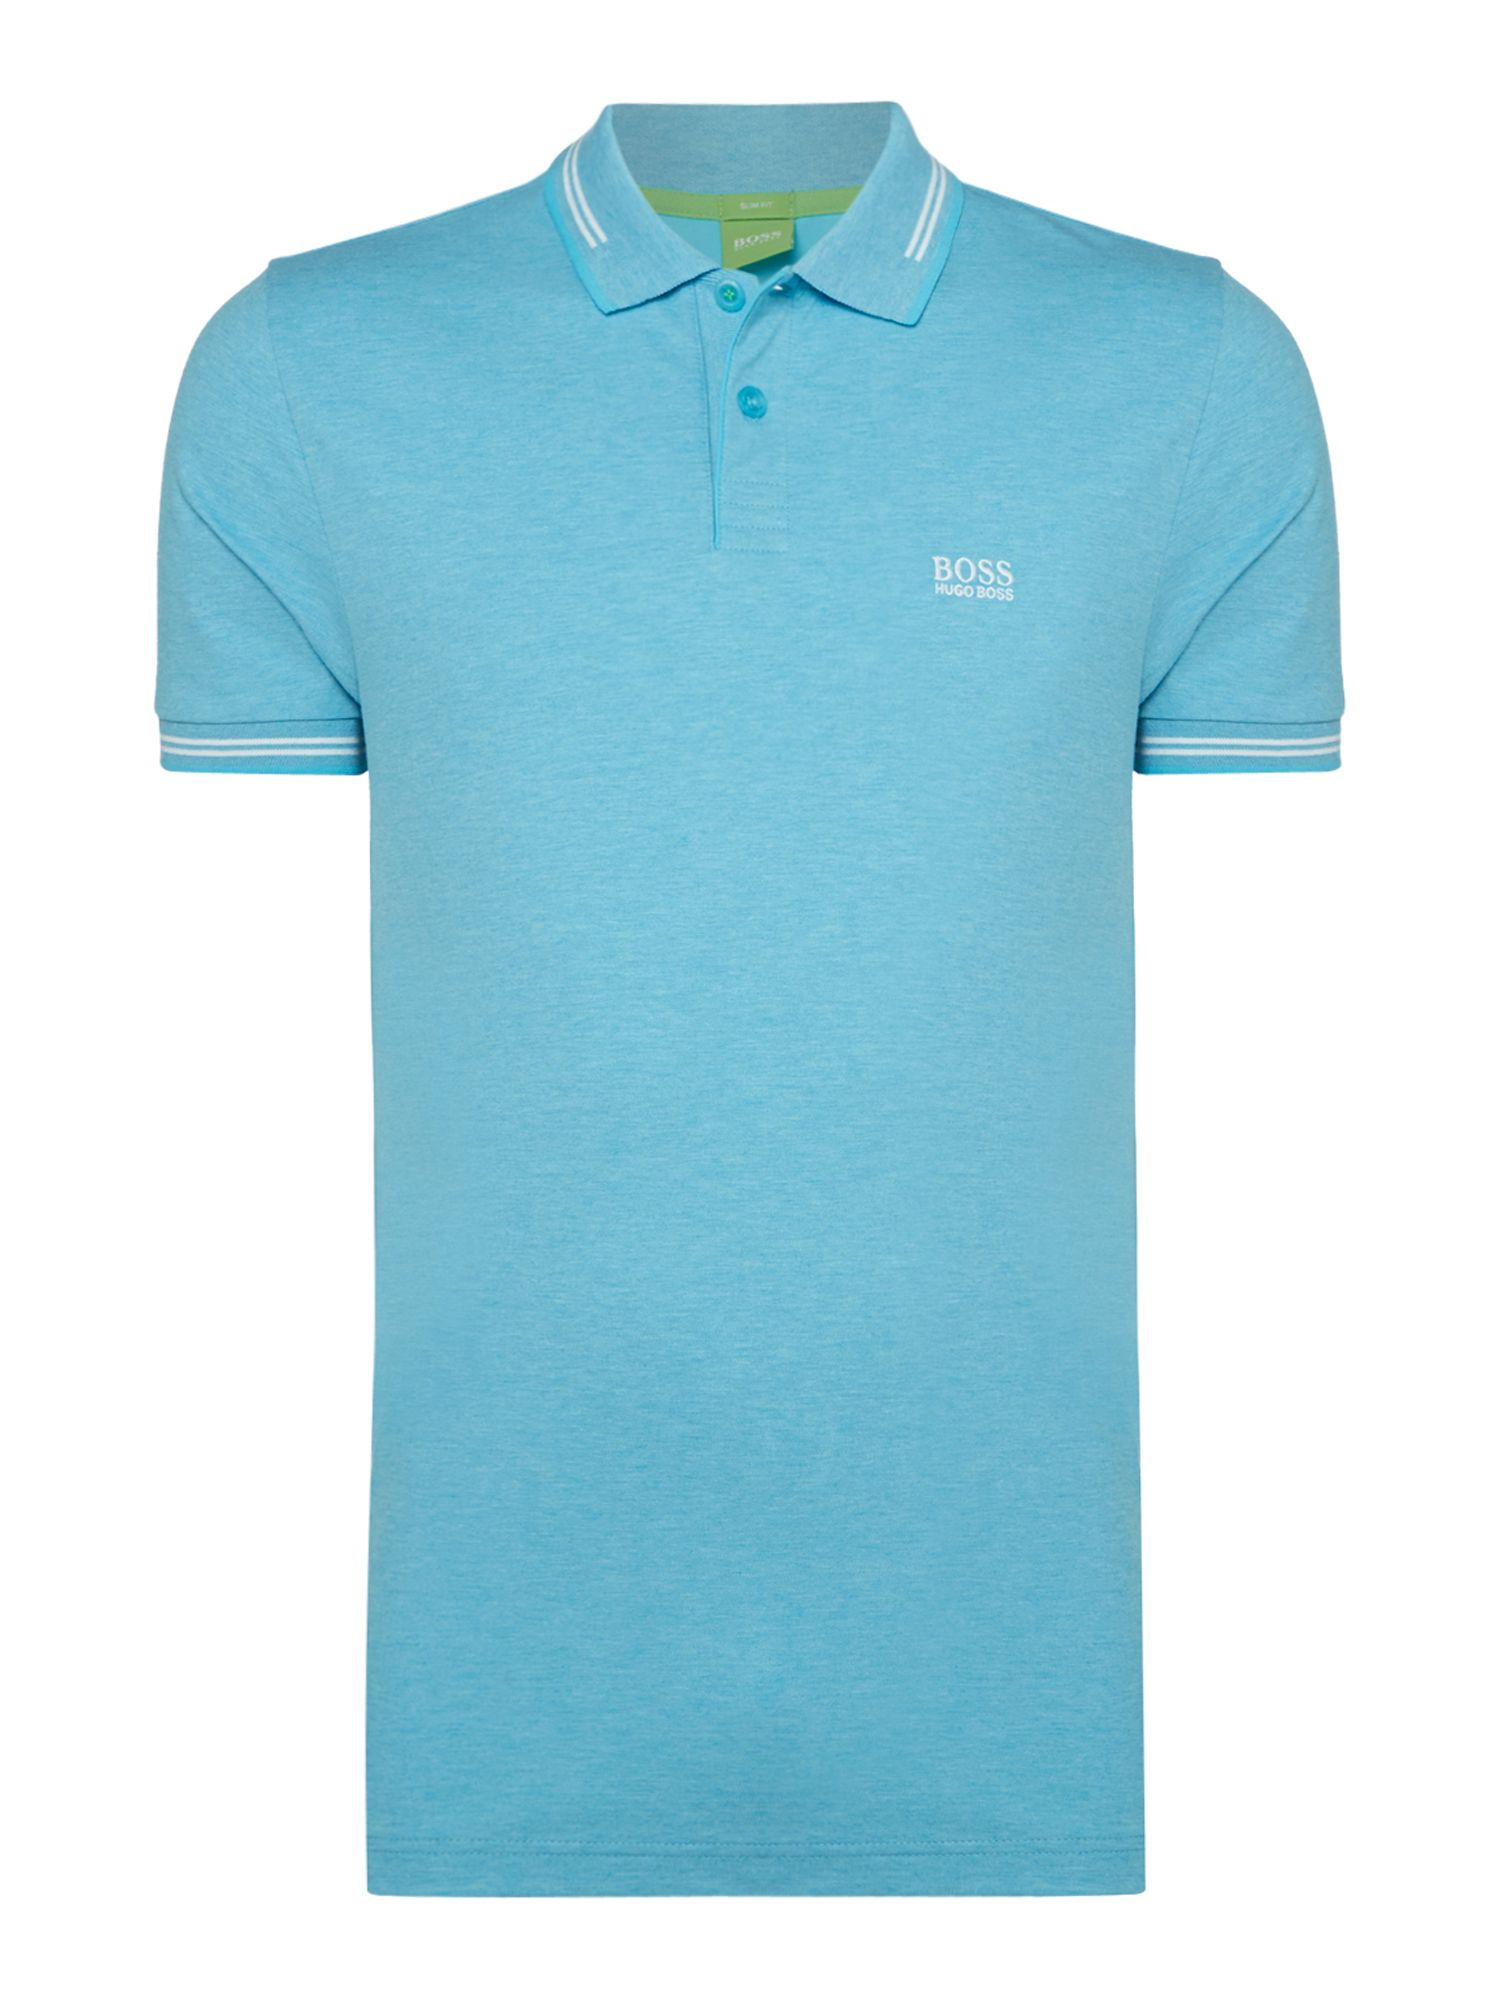 Men's Hugo Boss Paul Short Sleeve Slim Fit Polo Shirt, Light Blue